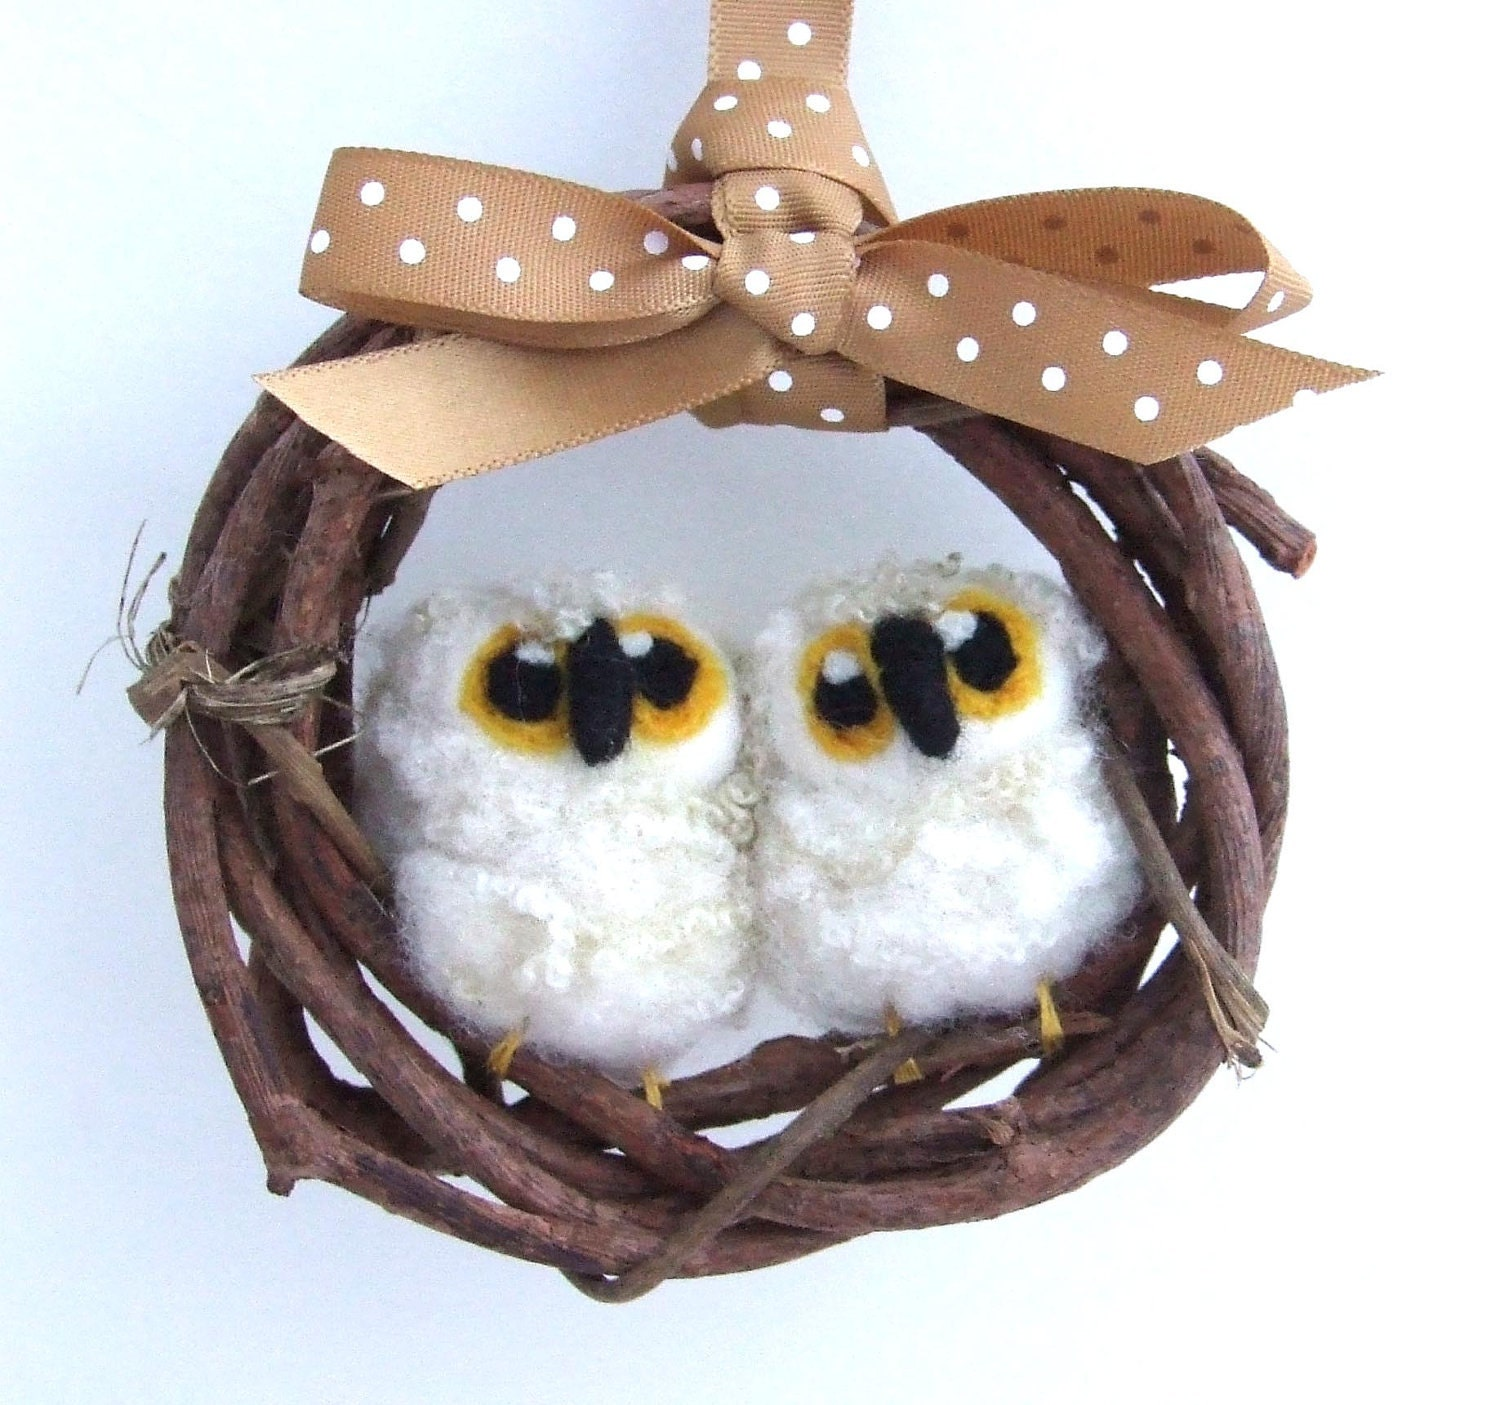 Needlefelted Owl Babies Mini Wreath with Pair of Felt Birds - feltmeupdesigns